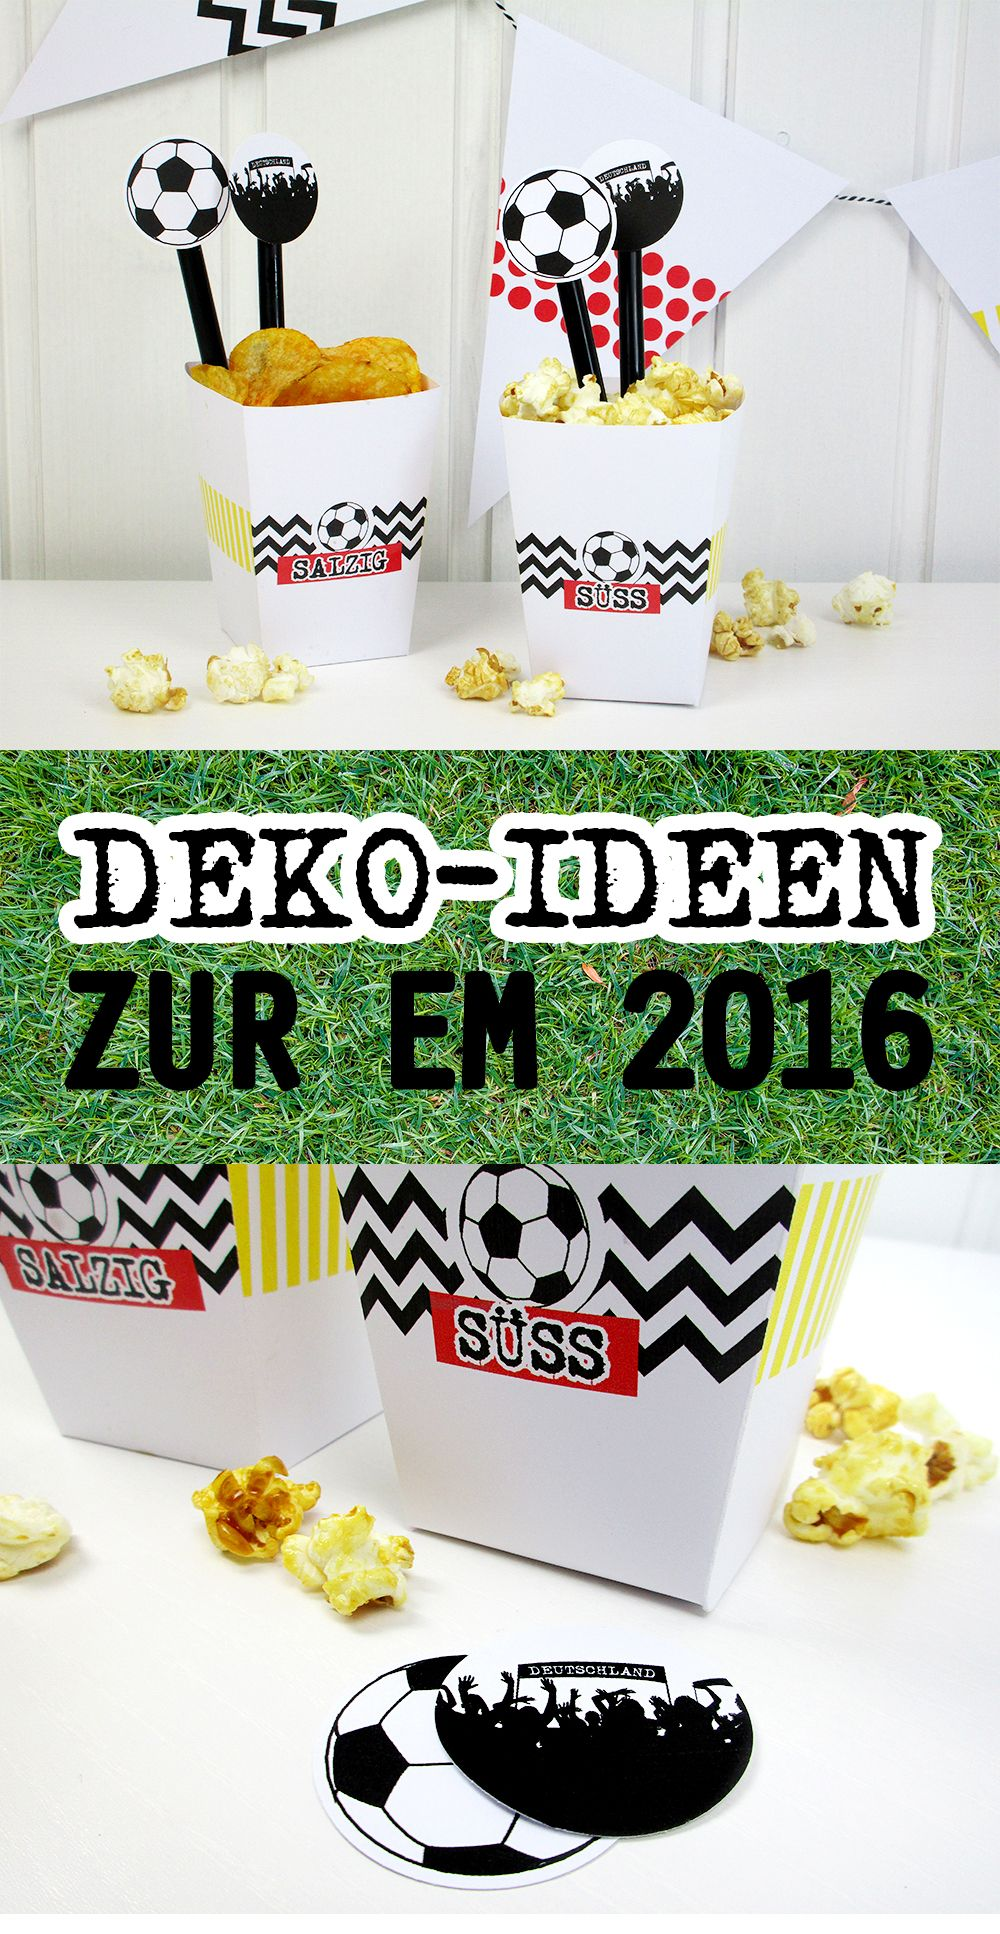 die besten 25 fussball deko ideen auf pinterest kindergeburtstag fu ball fu ball. Black Bedroom Furniture Sets. Home Design Ideas